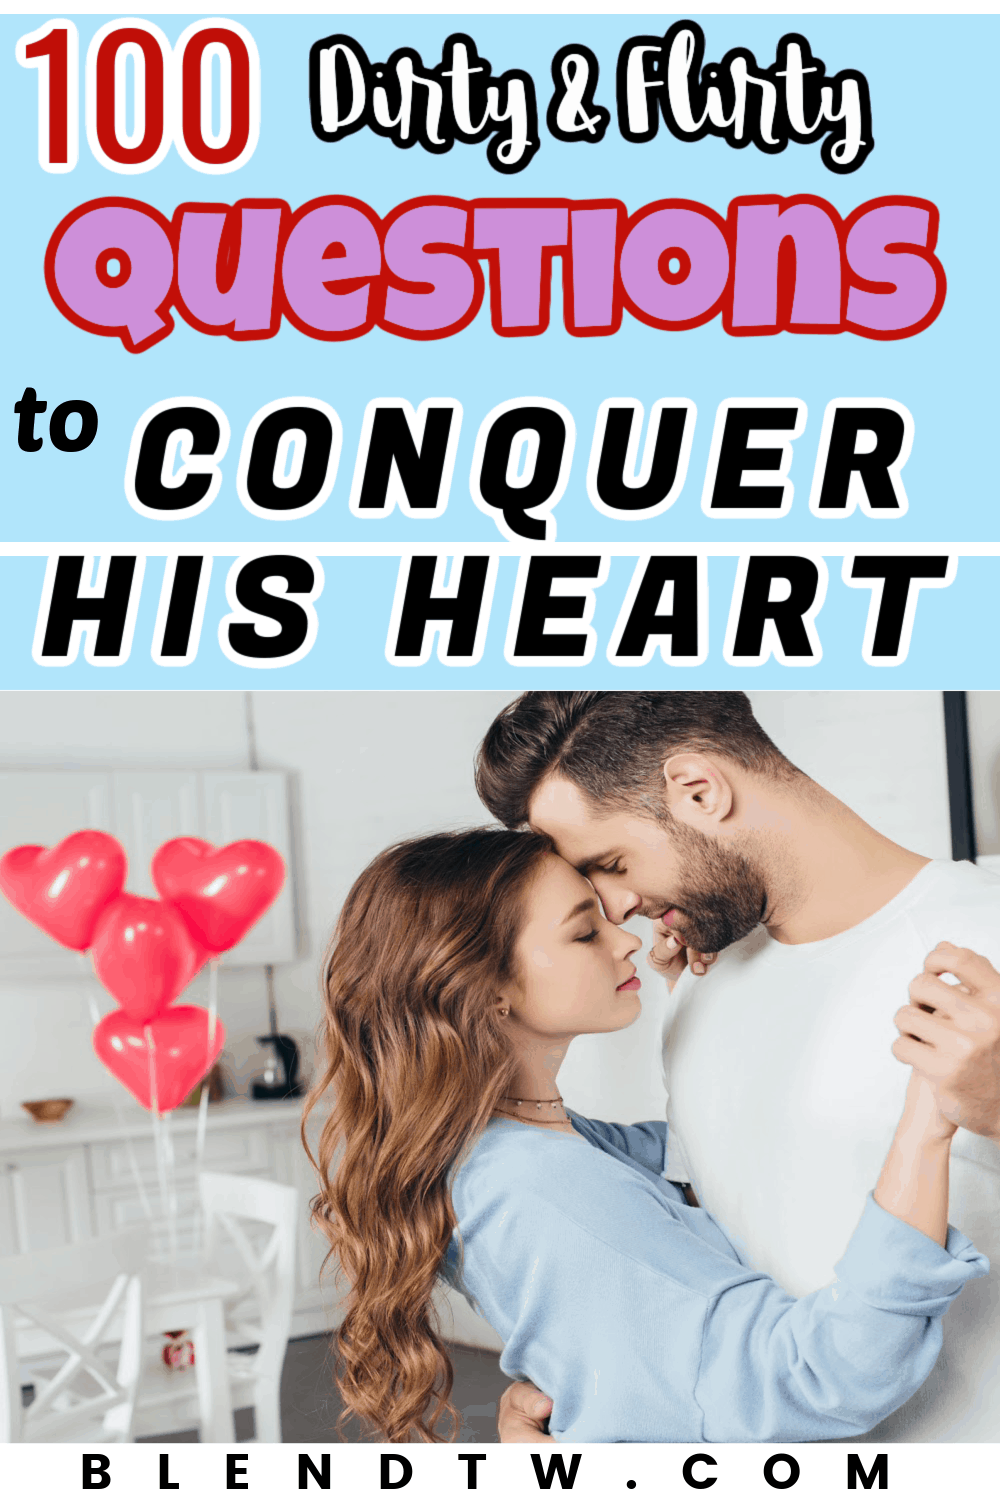 A couple embracing each other with flirty questions to conquer his heart